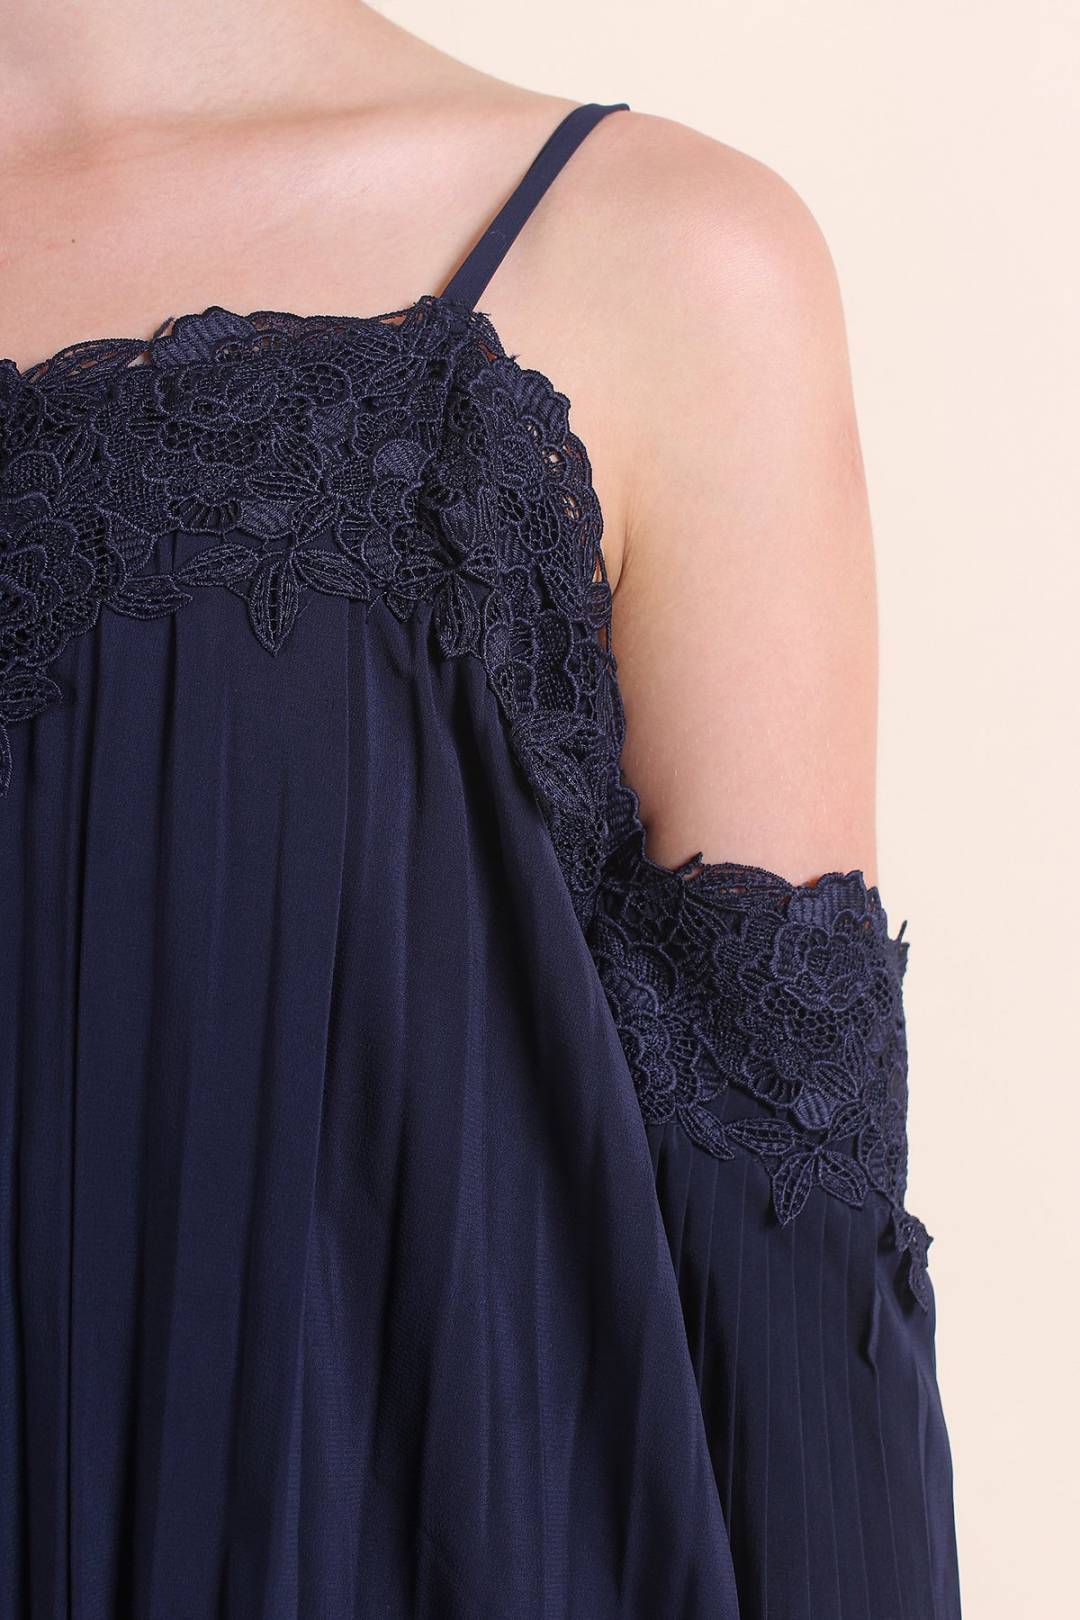 BIRDS OF PARADISE COLD SHOULDER PLEATED DRESS IN NAVY BLUE [XS/S/M/L]